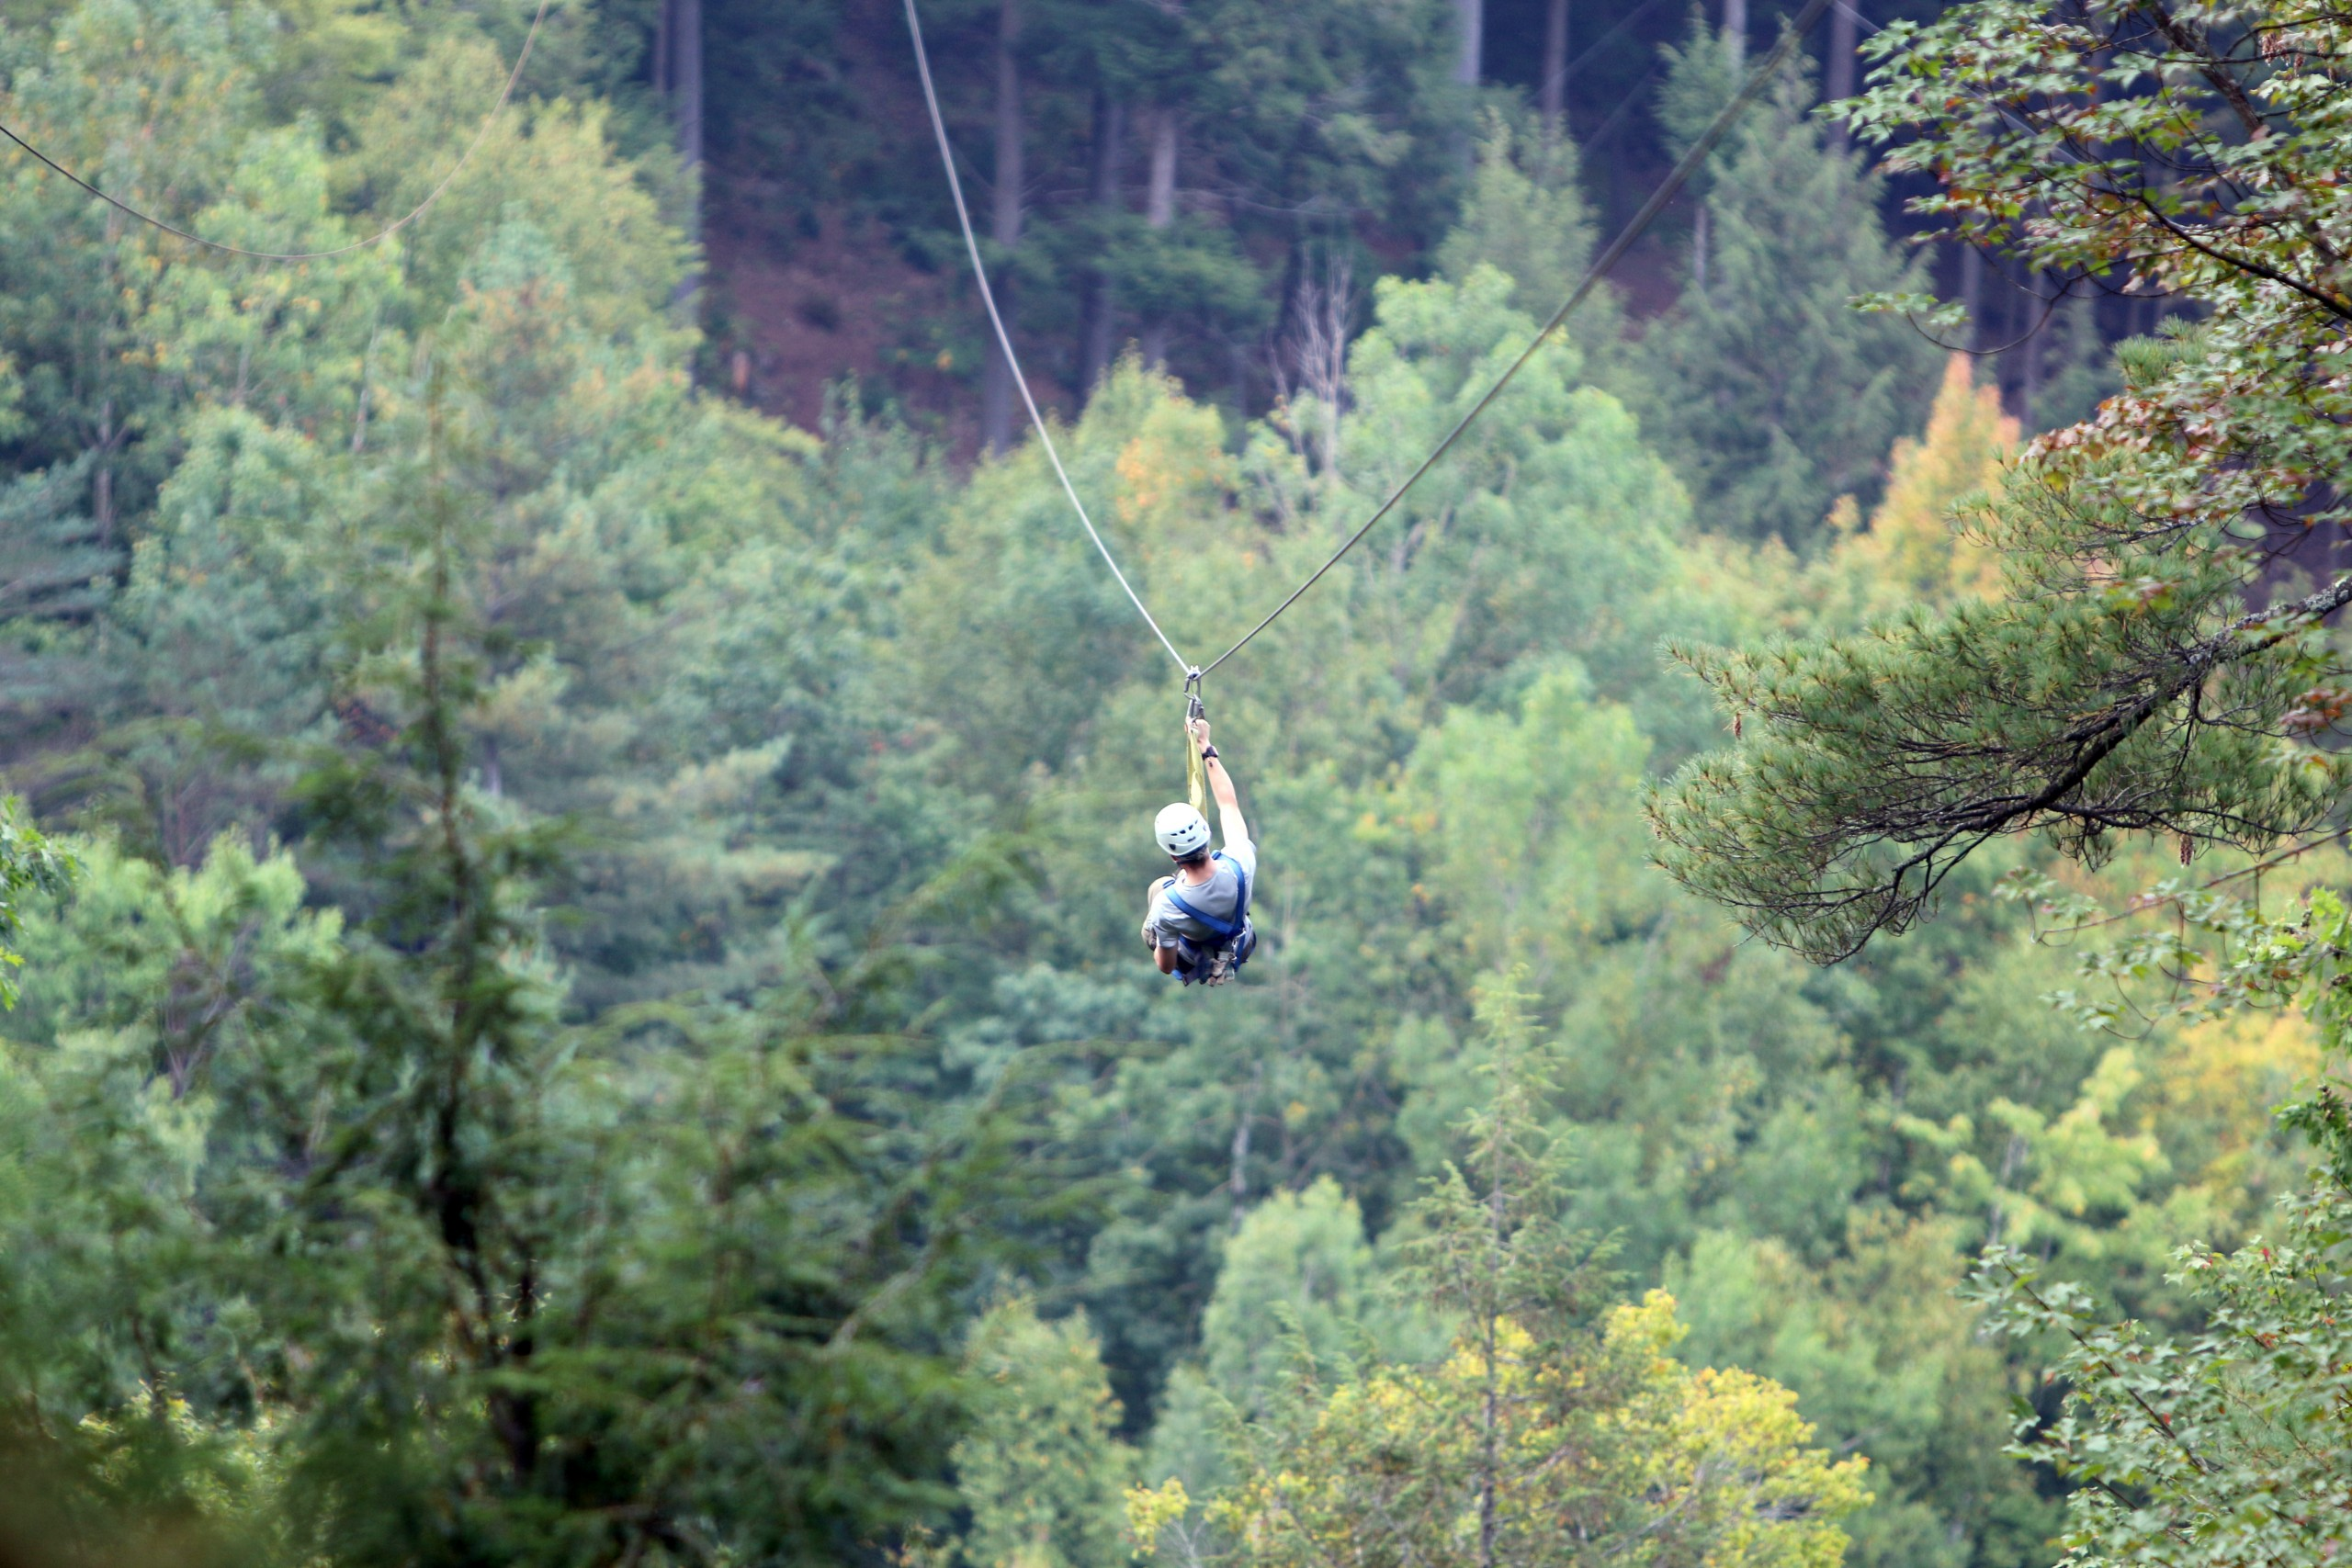 Ziplining Through the Trees